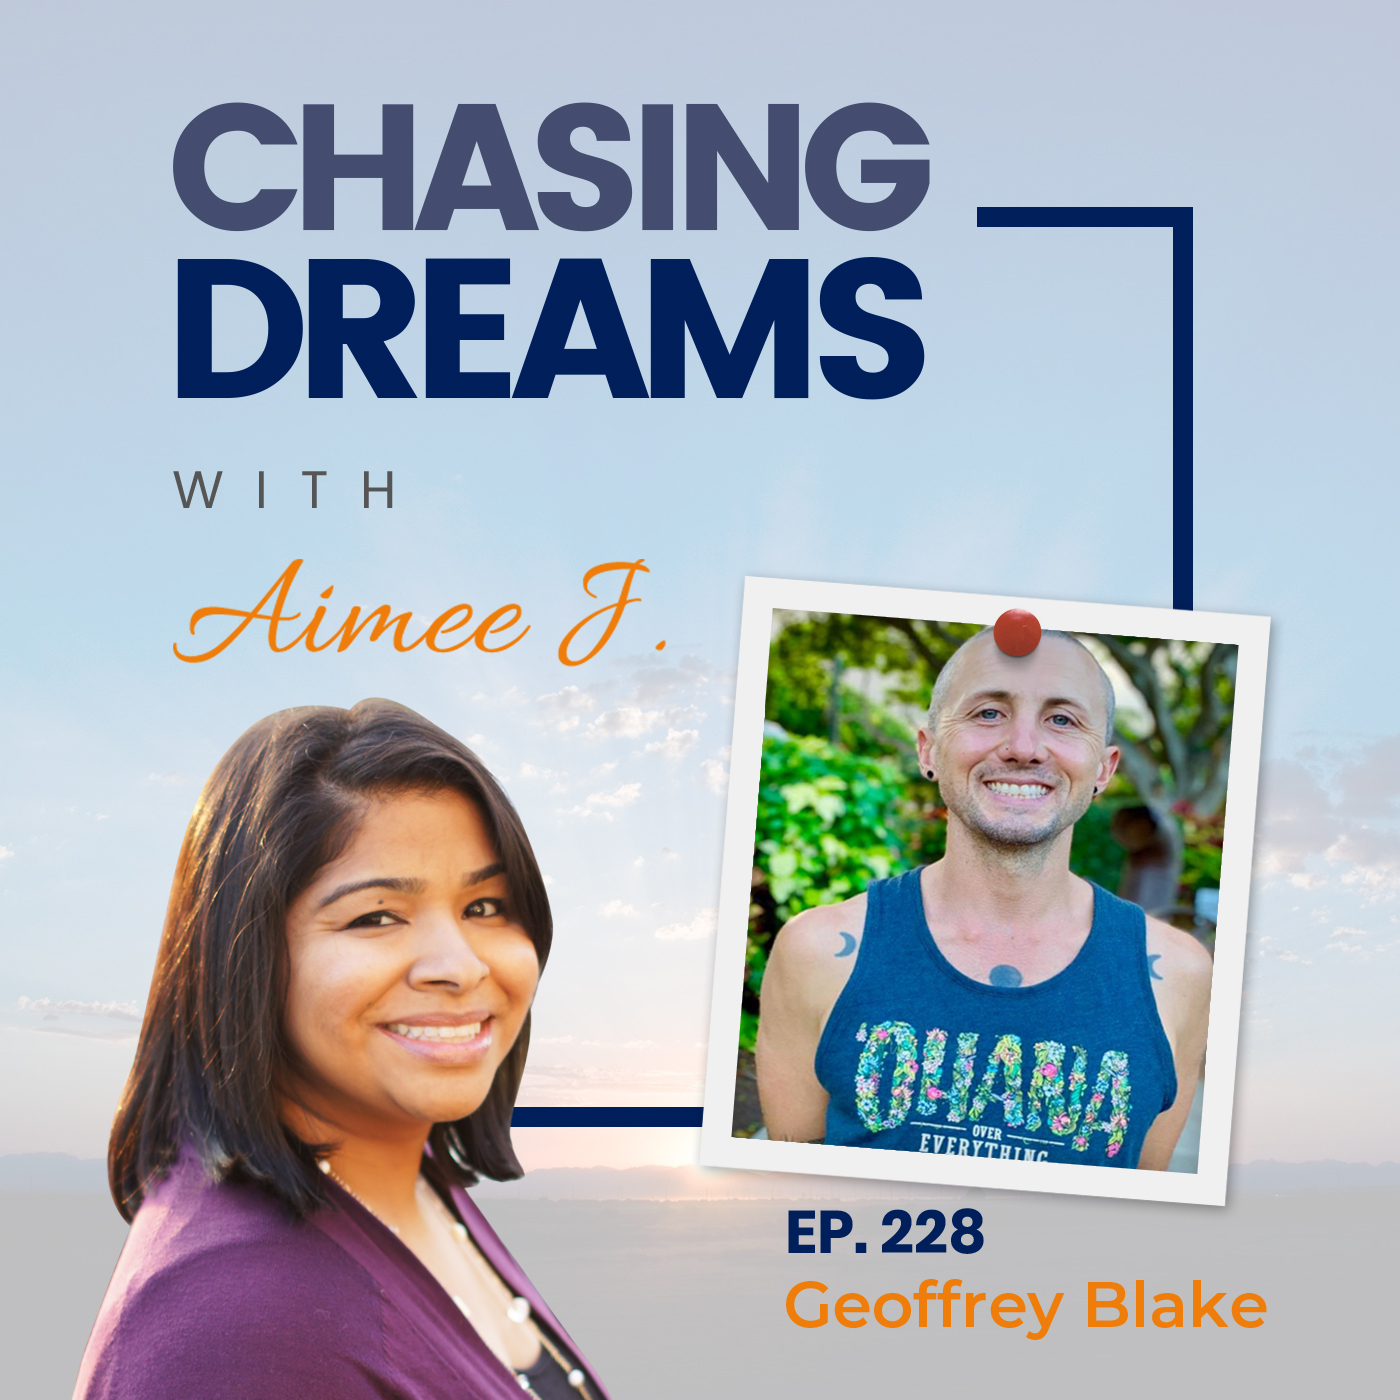 Ep. 228 - Geoffrey Blake aka GB - On How a Daily Gratitude Practice Can Change Your Life!